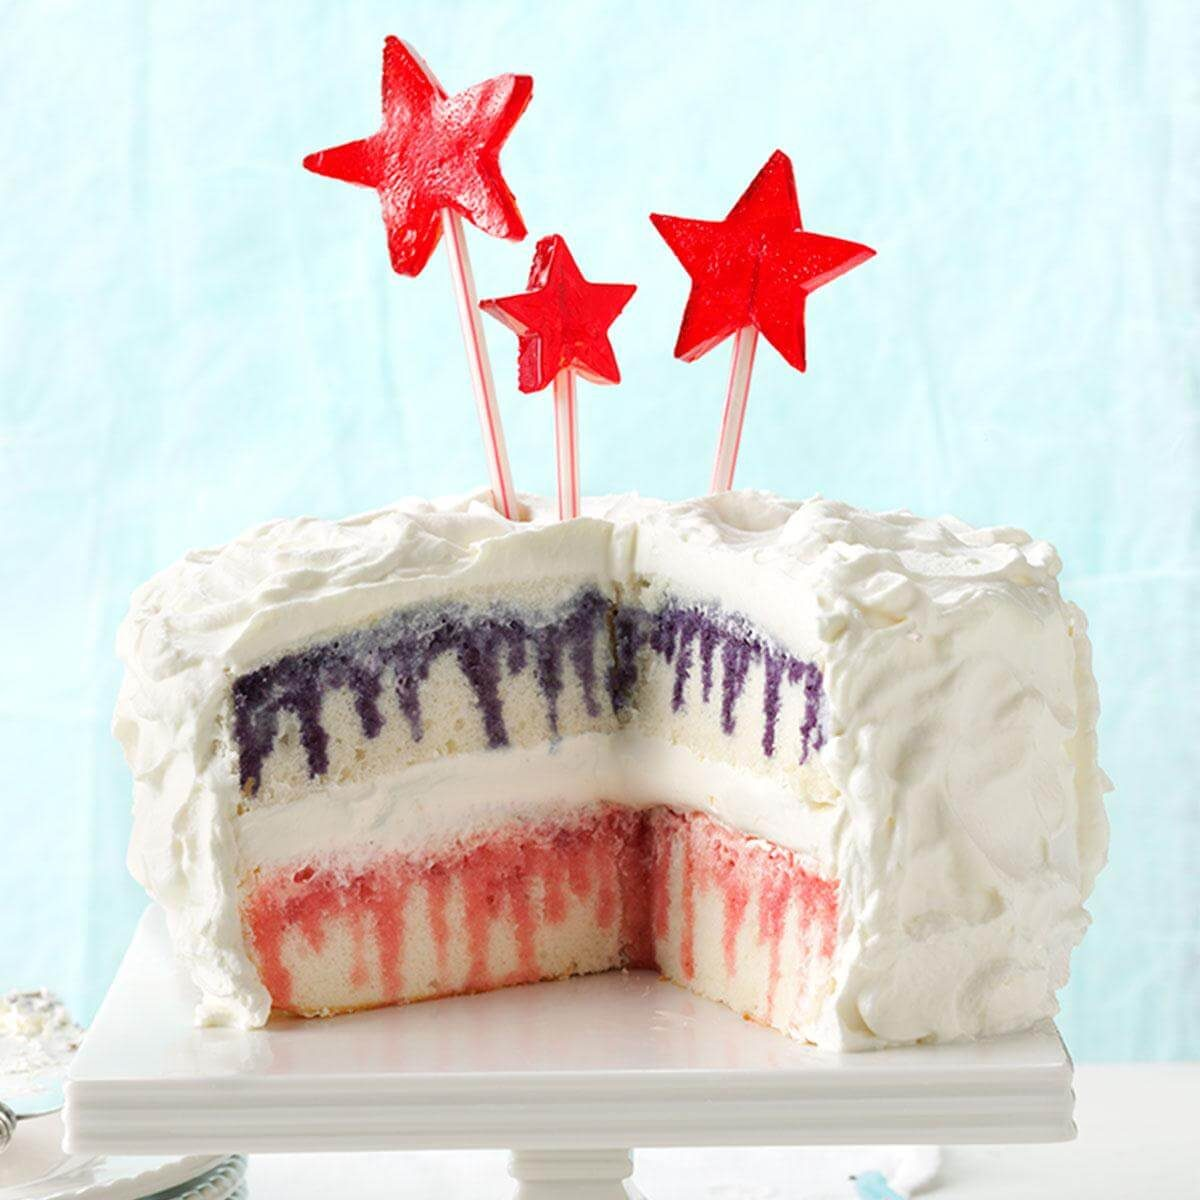 Excellent Red White Blueberry Poke Cake Recipe Taste Of Home Funny Birthday Cards Online Alyptdamsfinfo